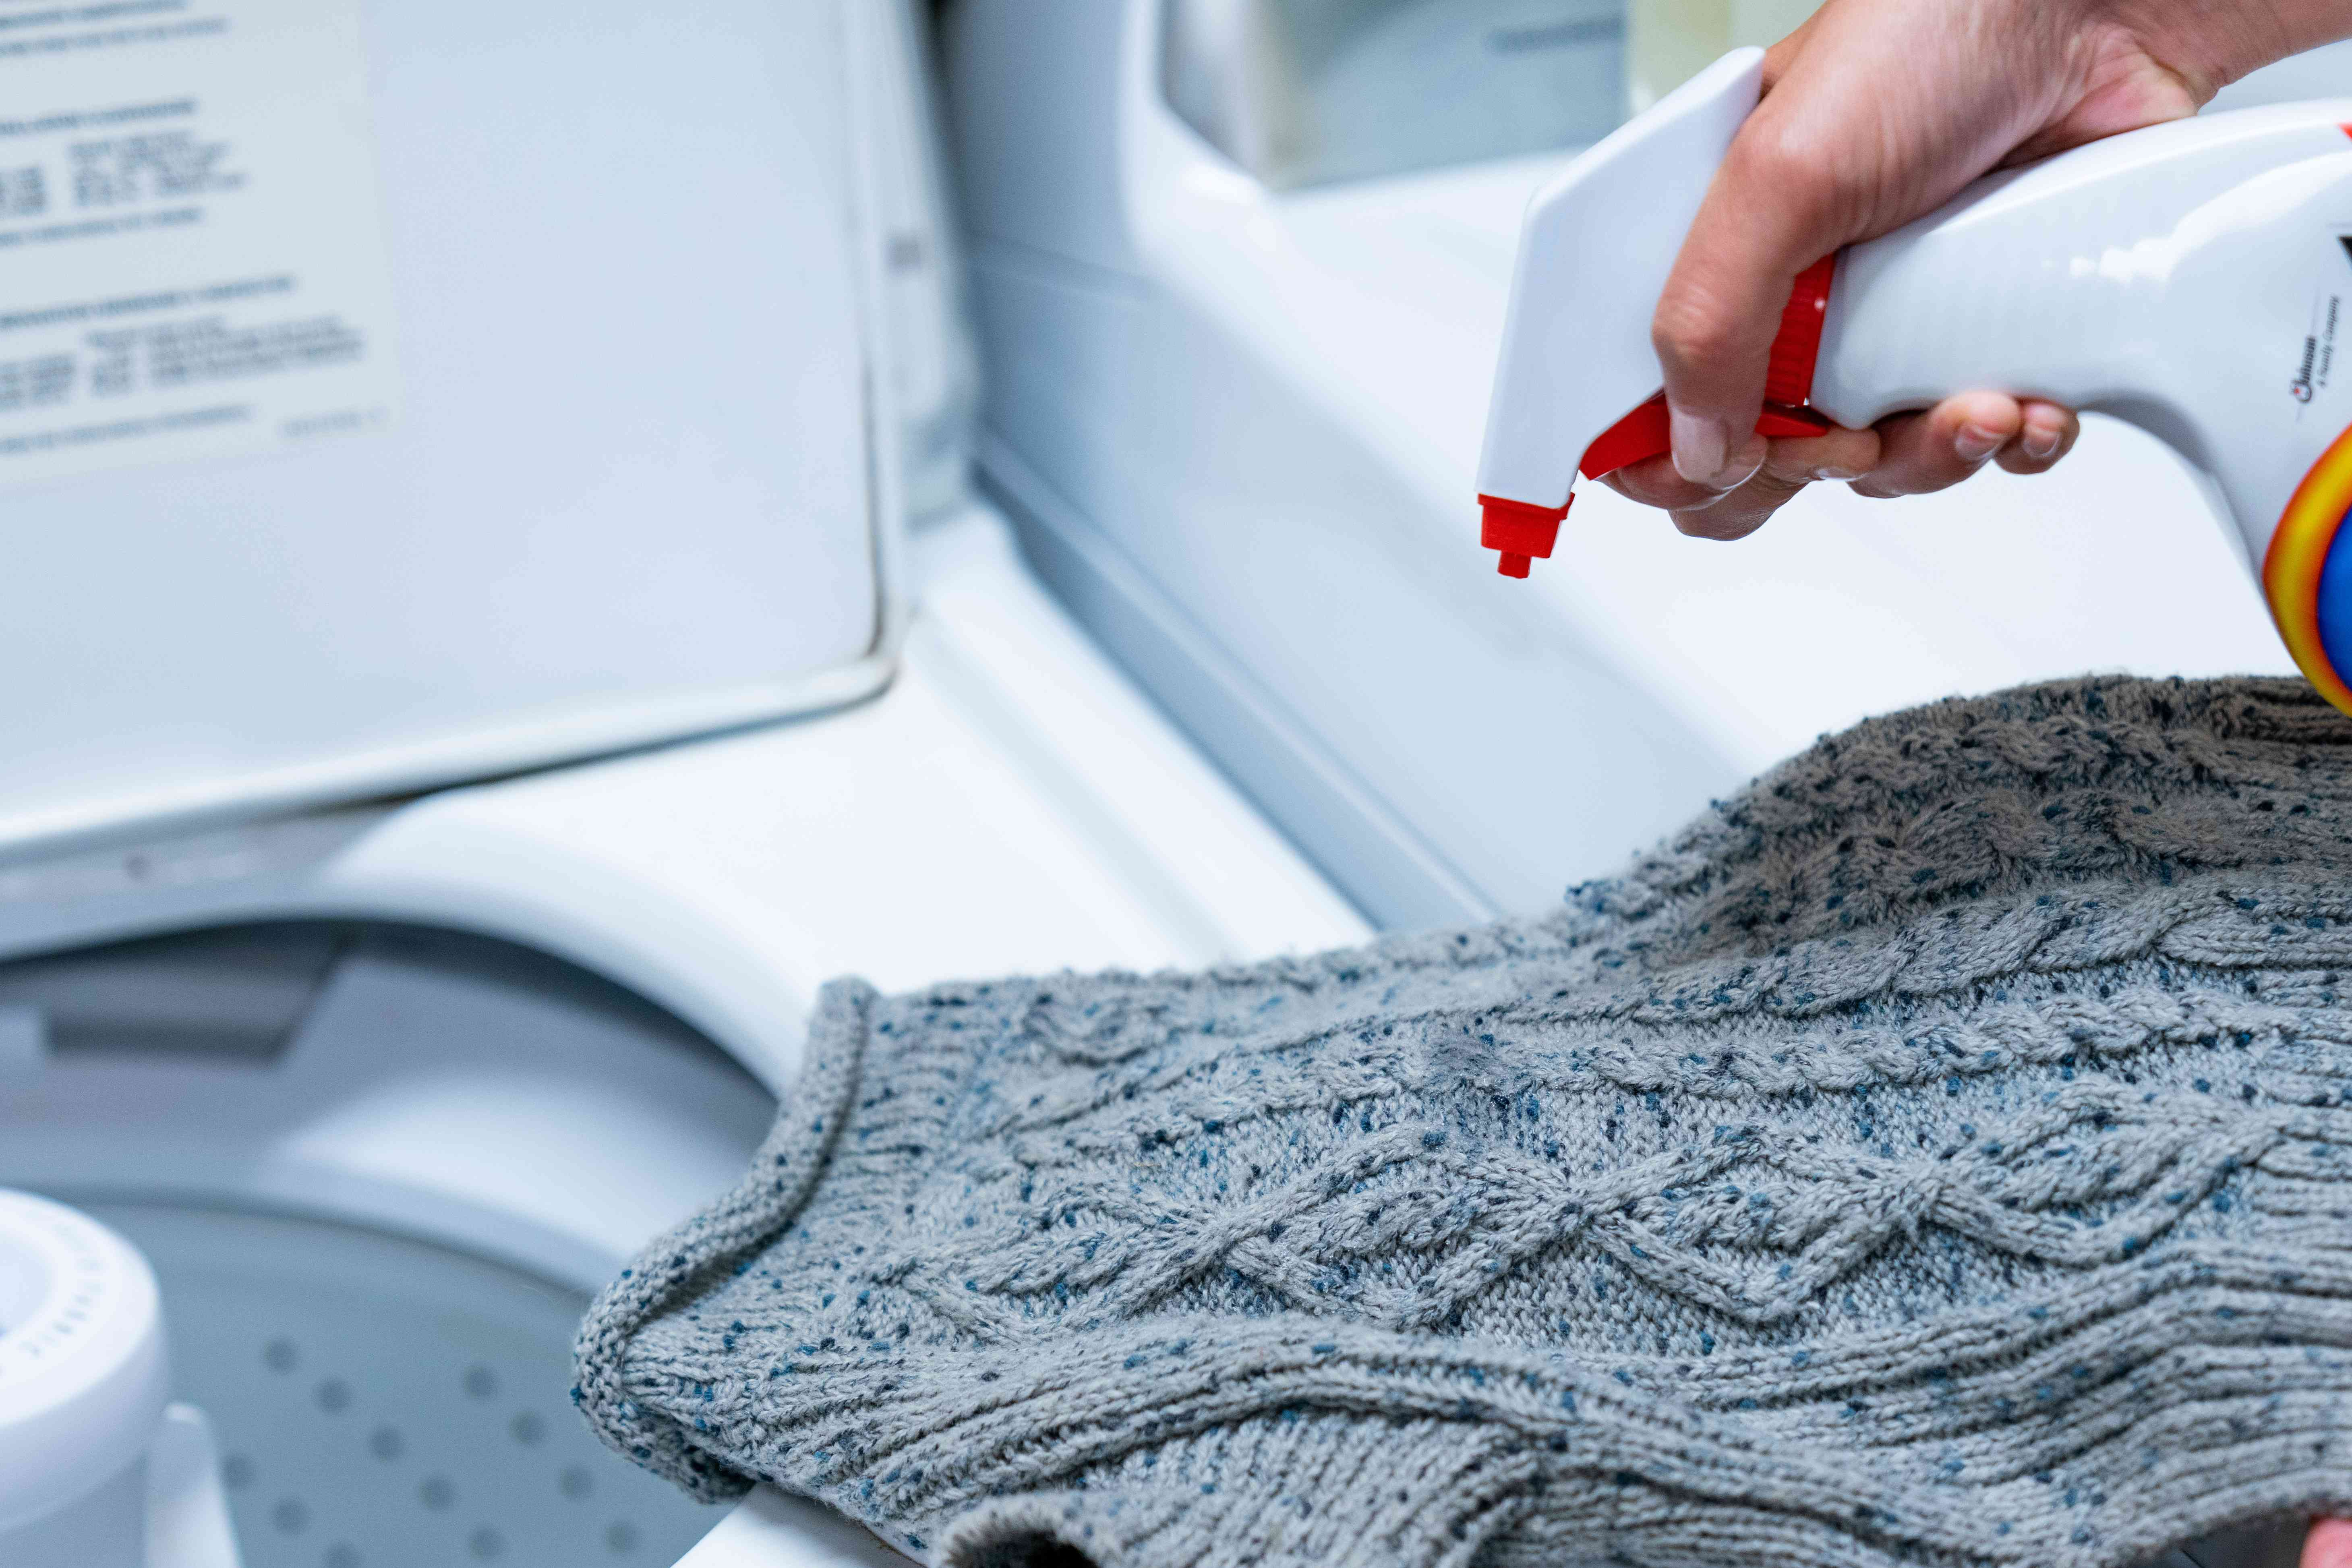 pretreating a stain on a dog sweater